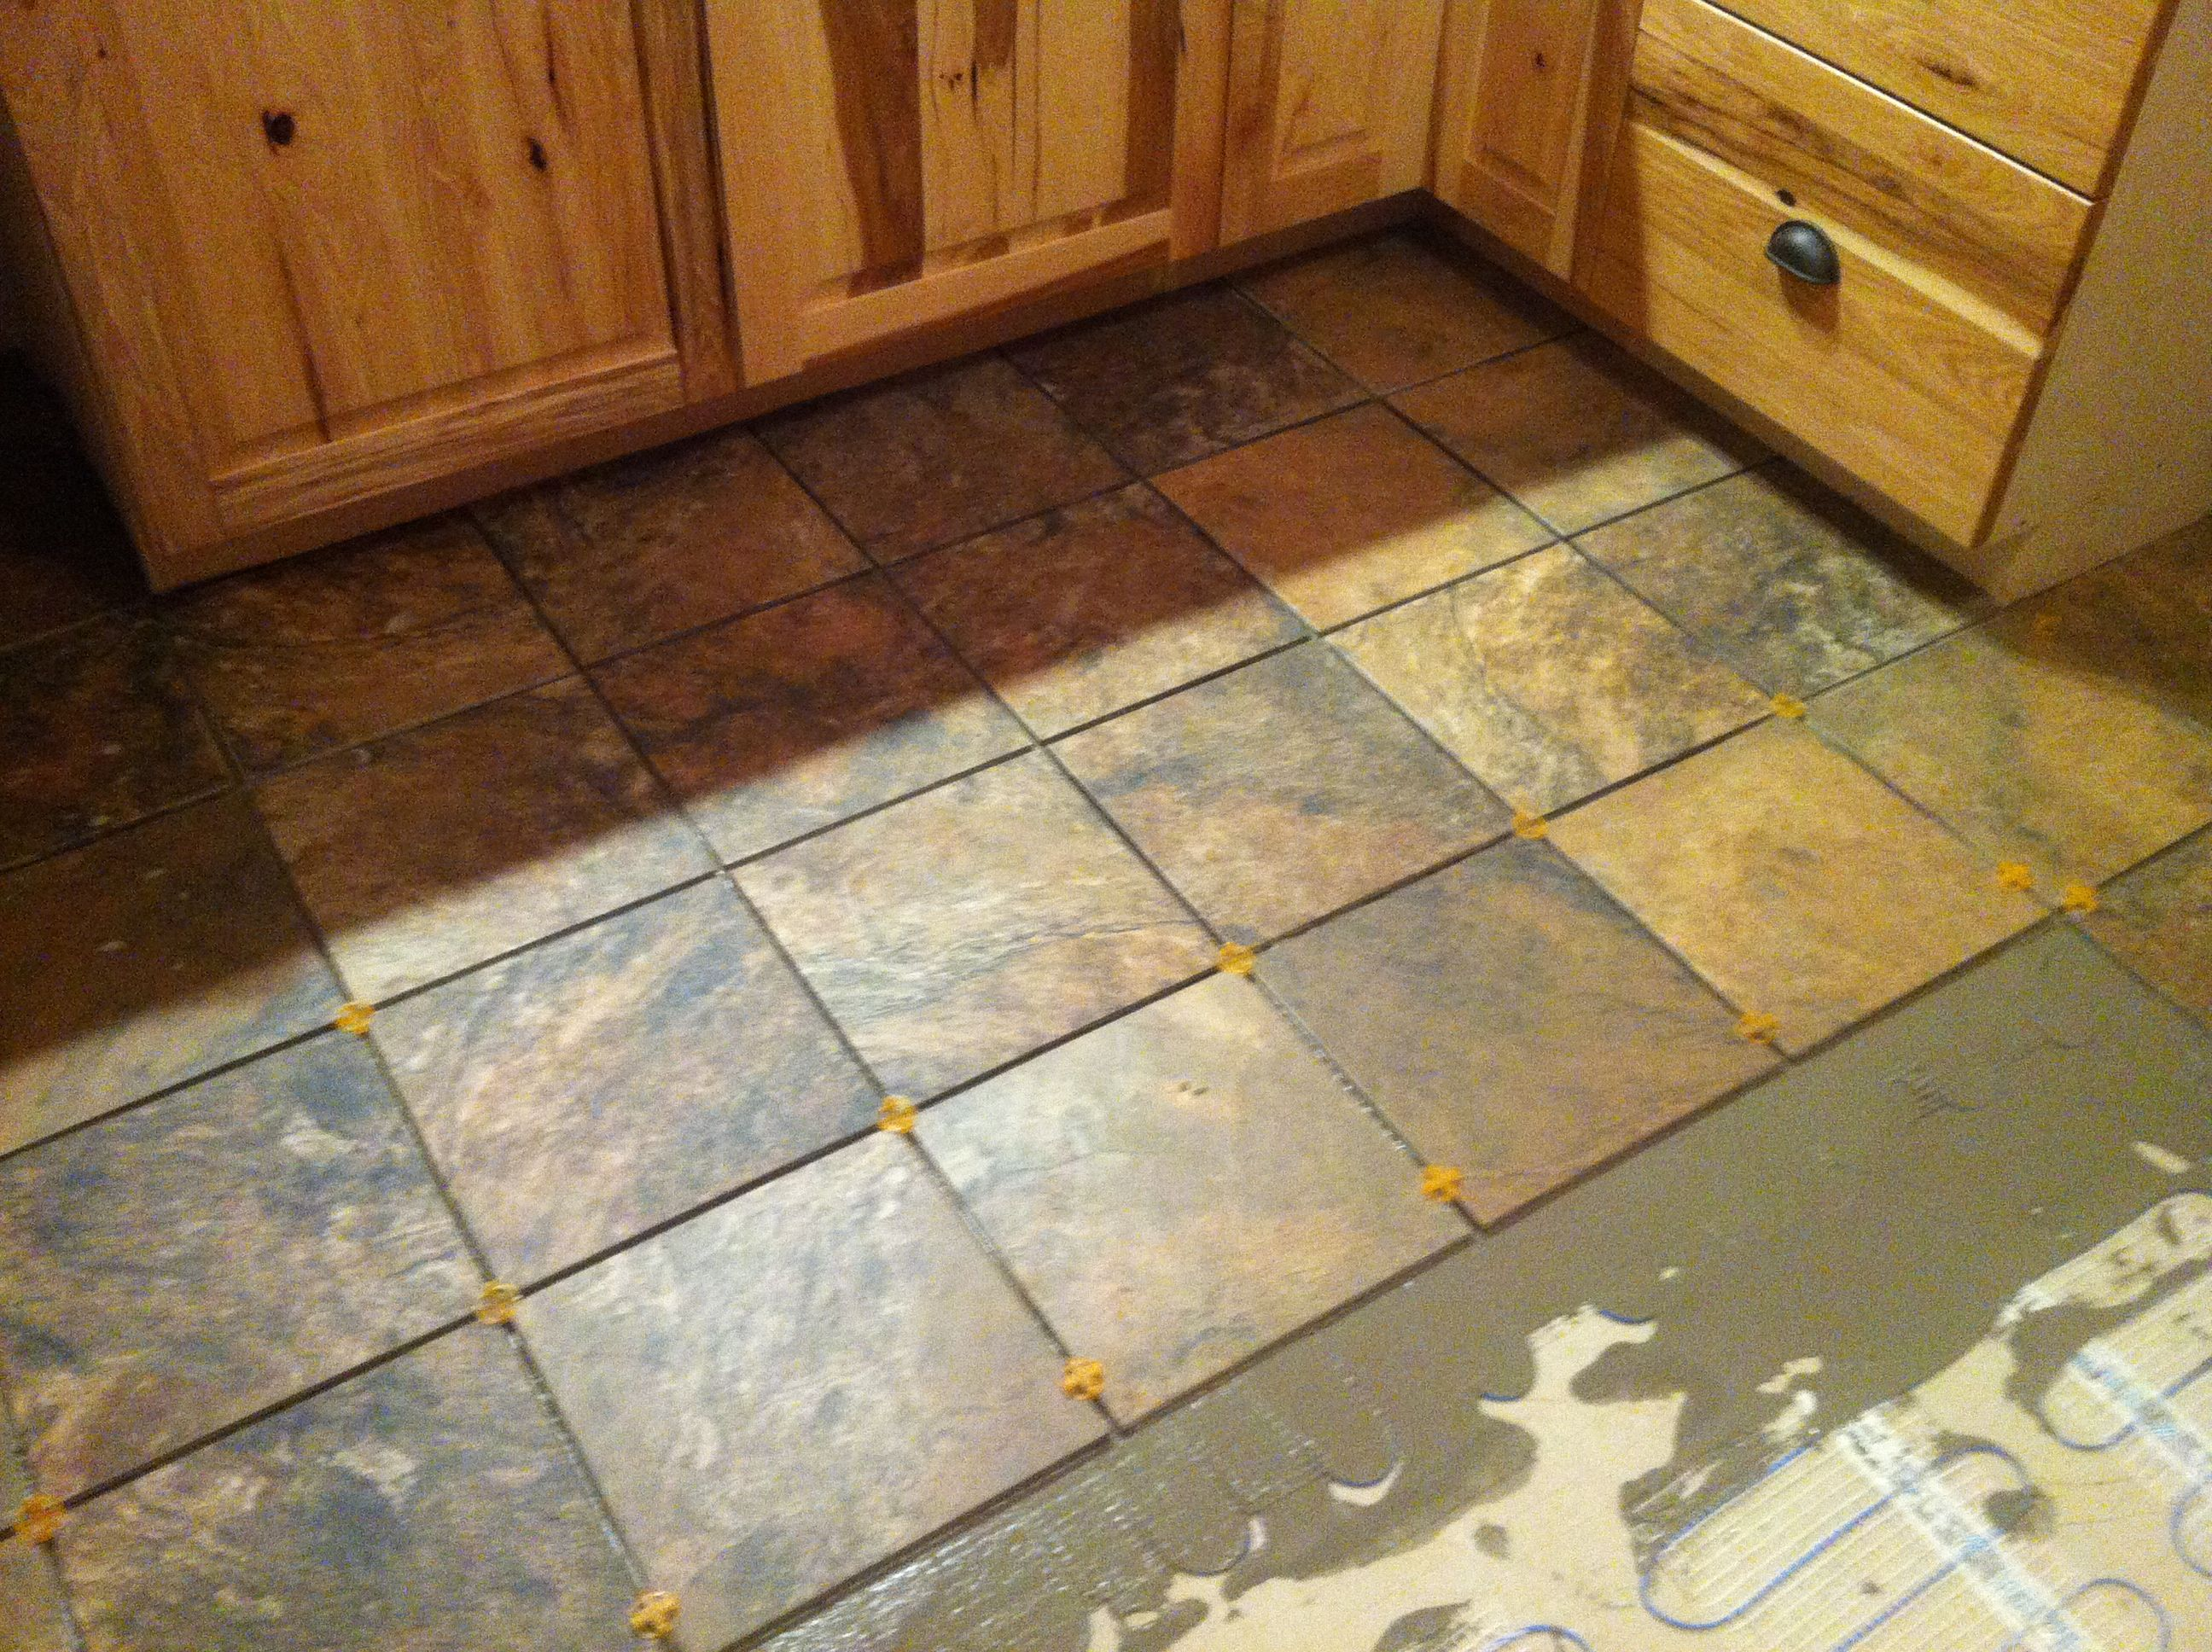 Heated Bathroom Floor Under Tile With Well Made Laticrete 3 X 5 15 Sq Ft Mat Thermostat And Wire Eye Ideas